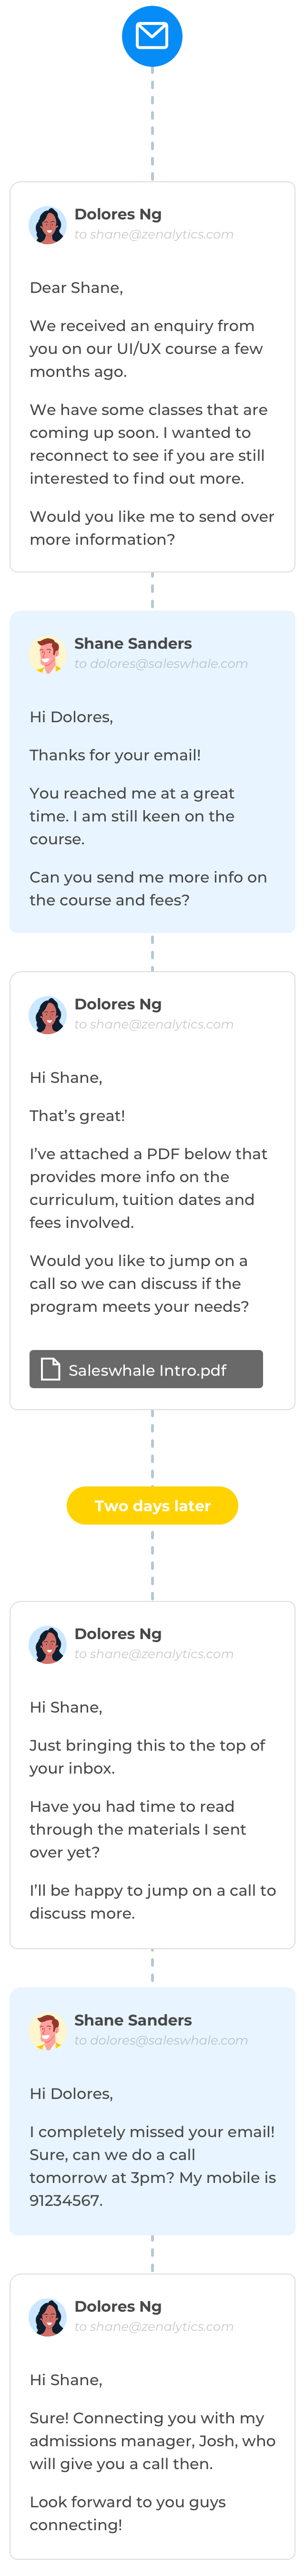 Image for education use case conversation sample